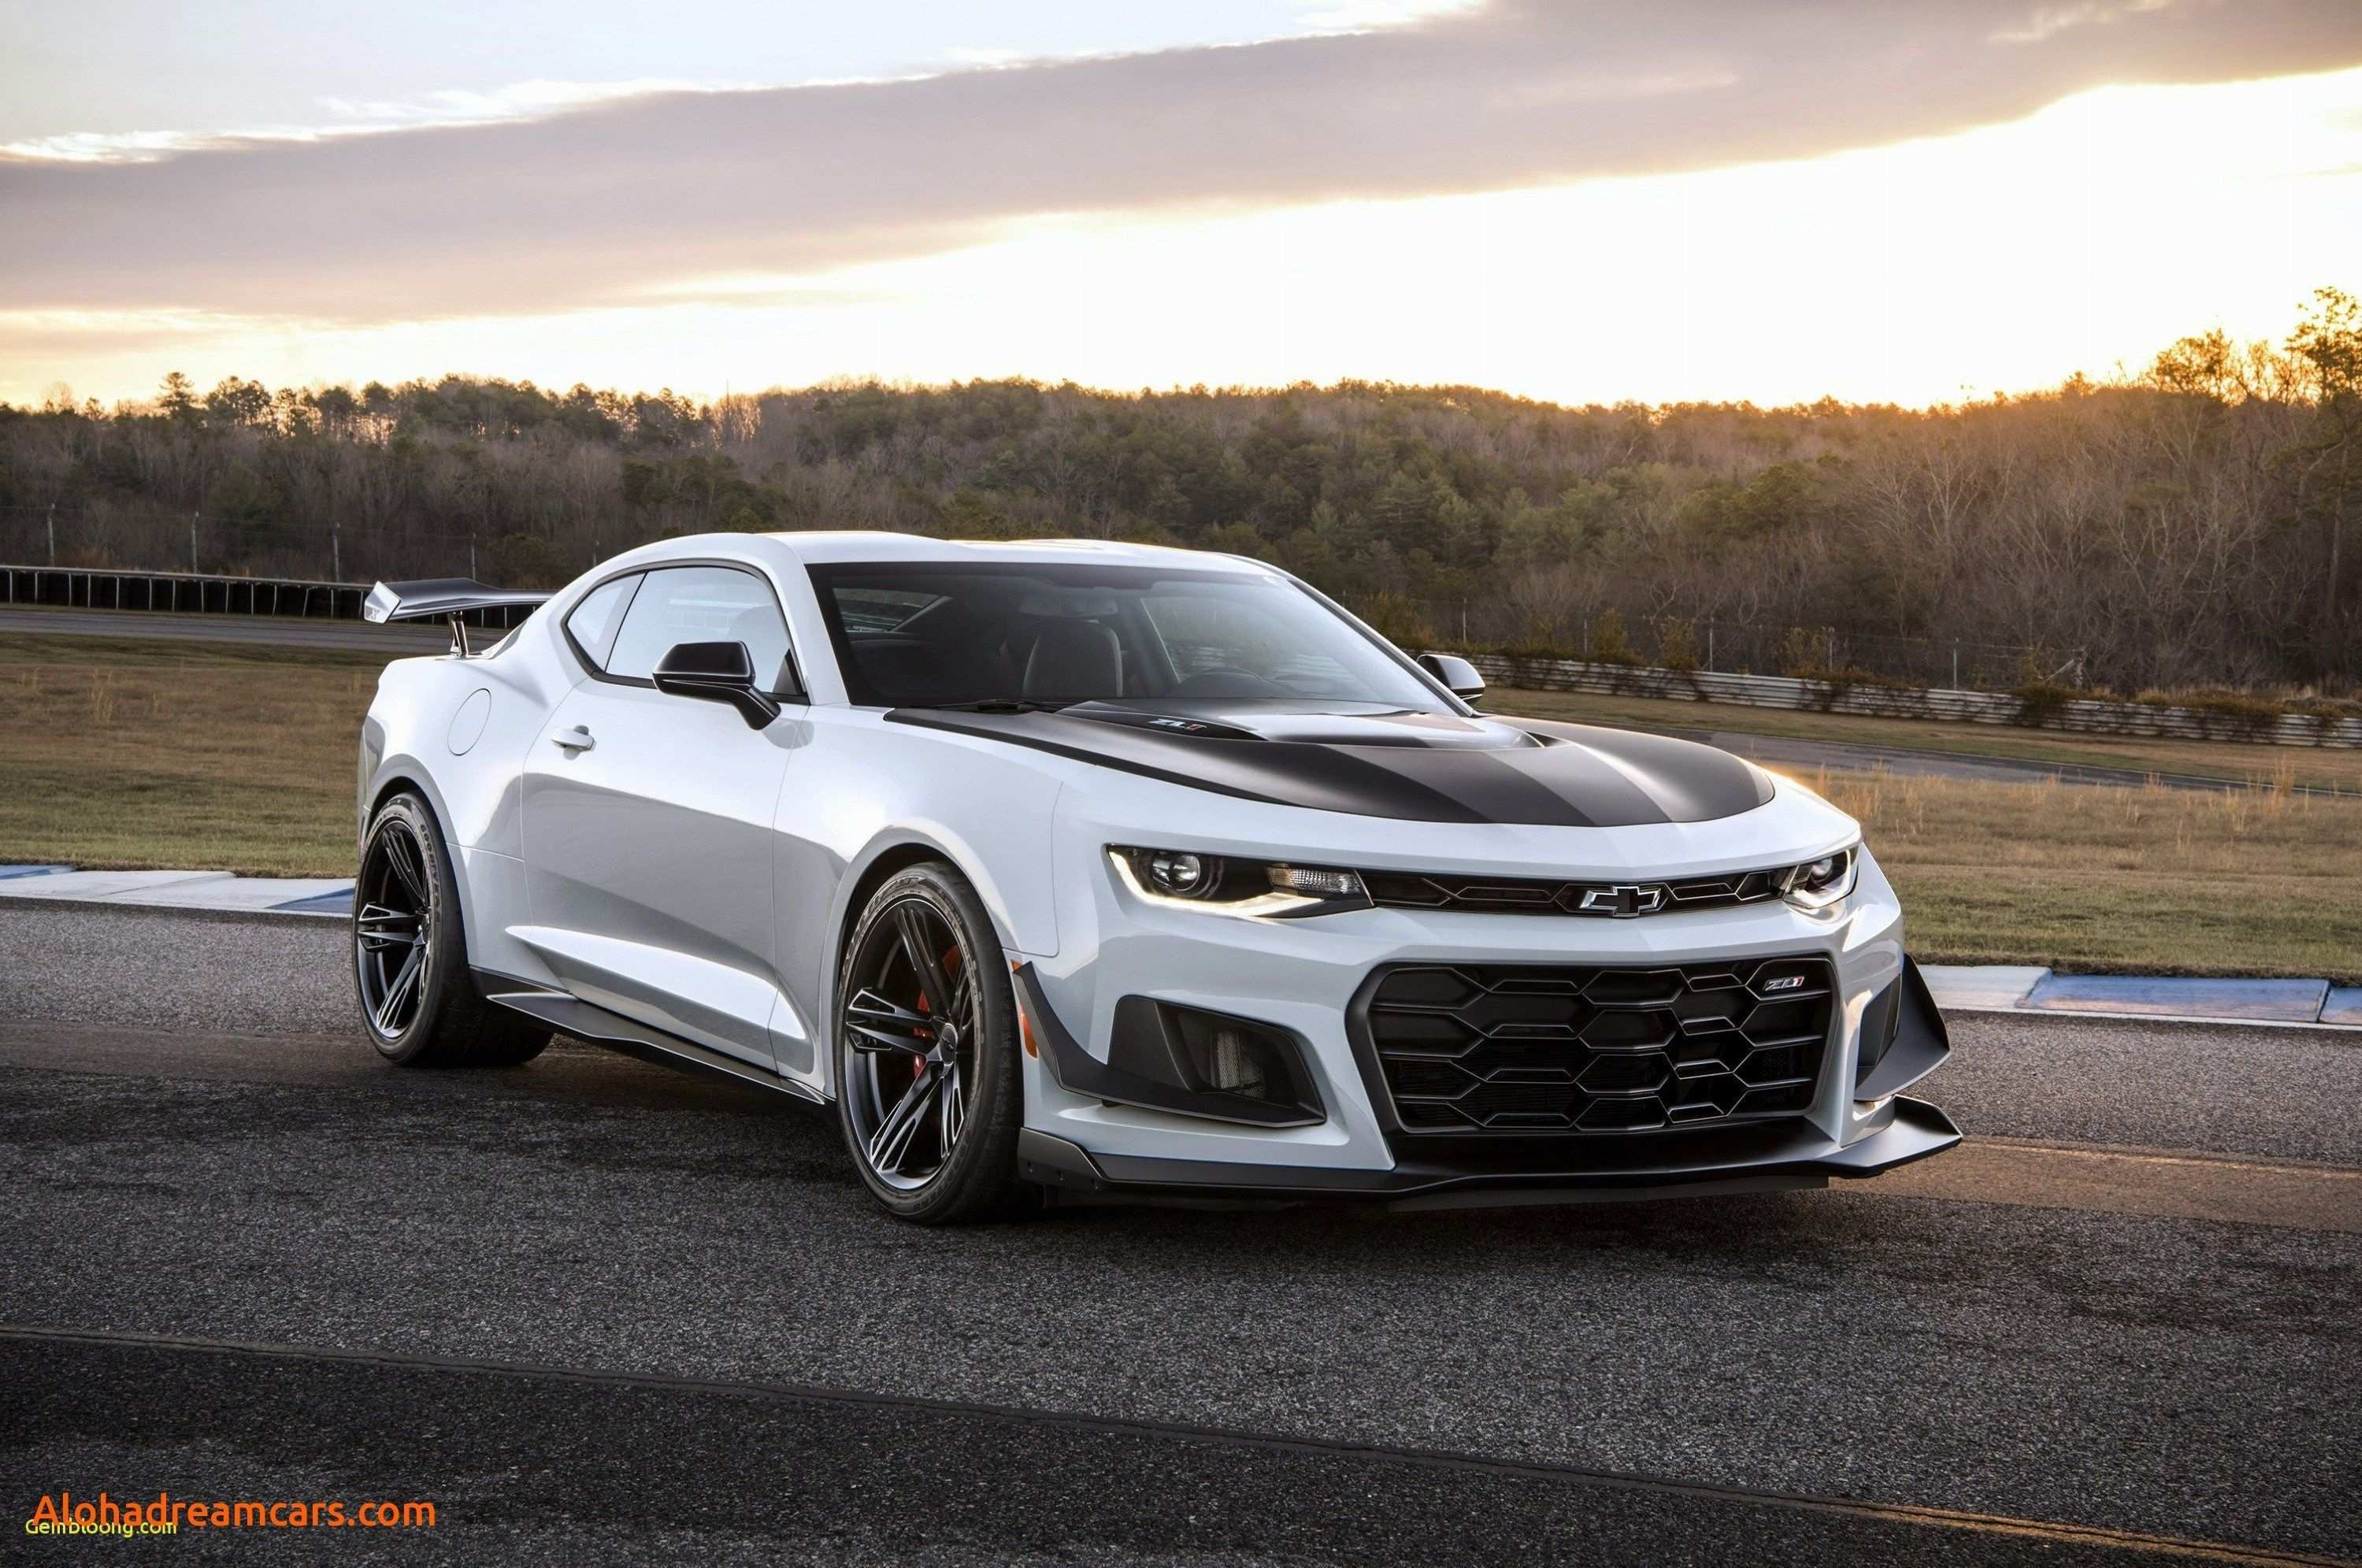 80 All New Best 2019 Buick Firebird And Trans Am Specs And Review Configurations with Best 2019 Buick Firebird And Trans Am Specs And Review